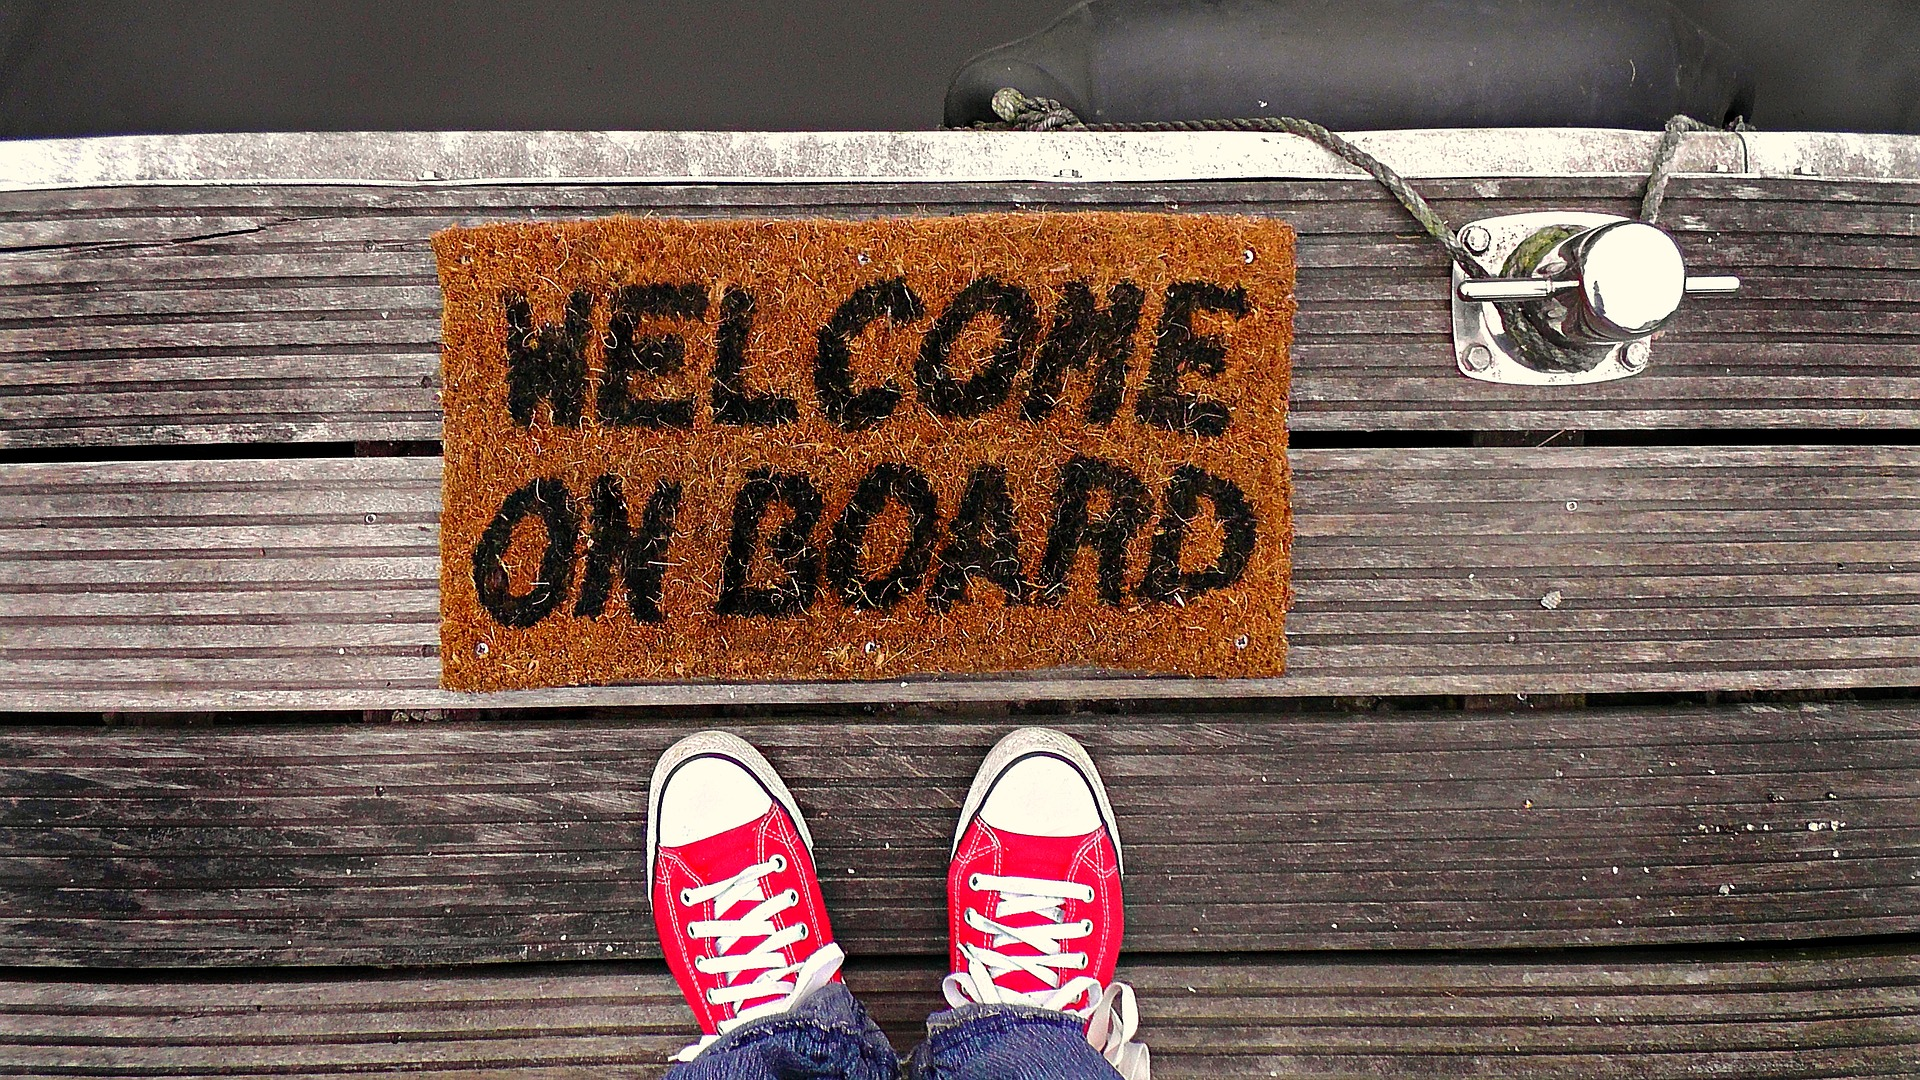 Onboarding new customers with email